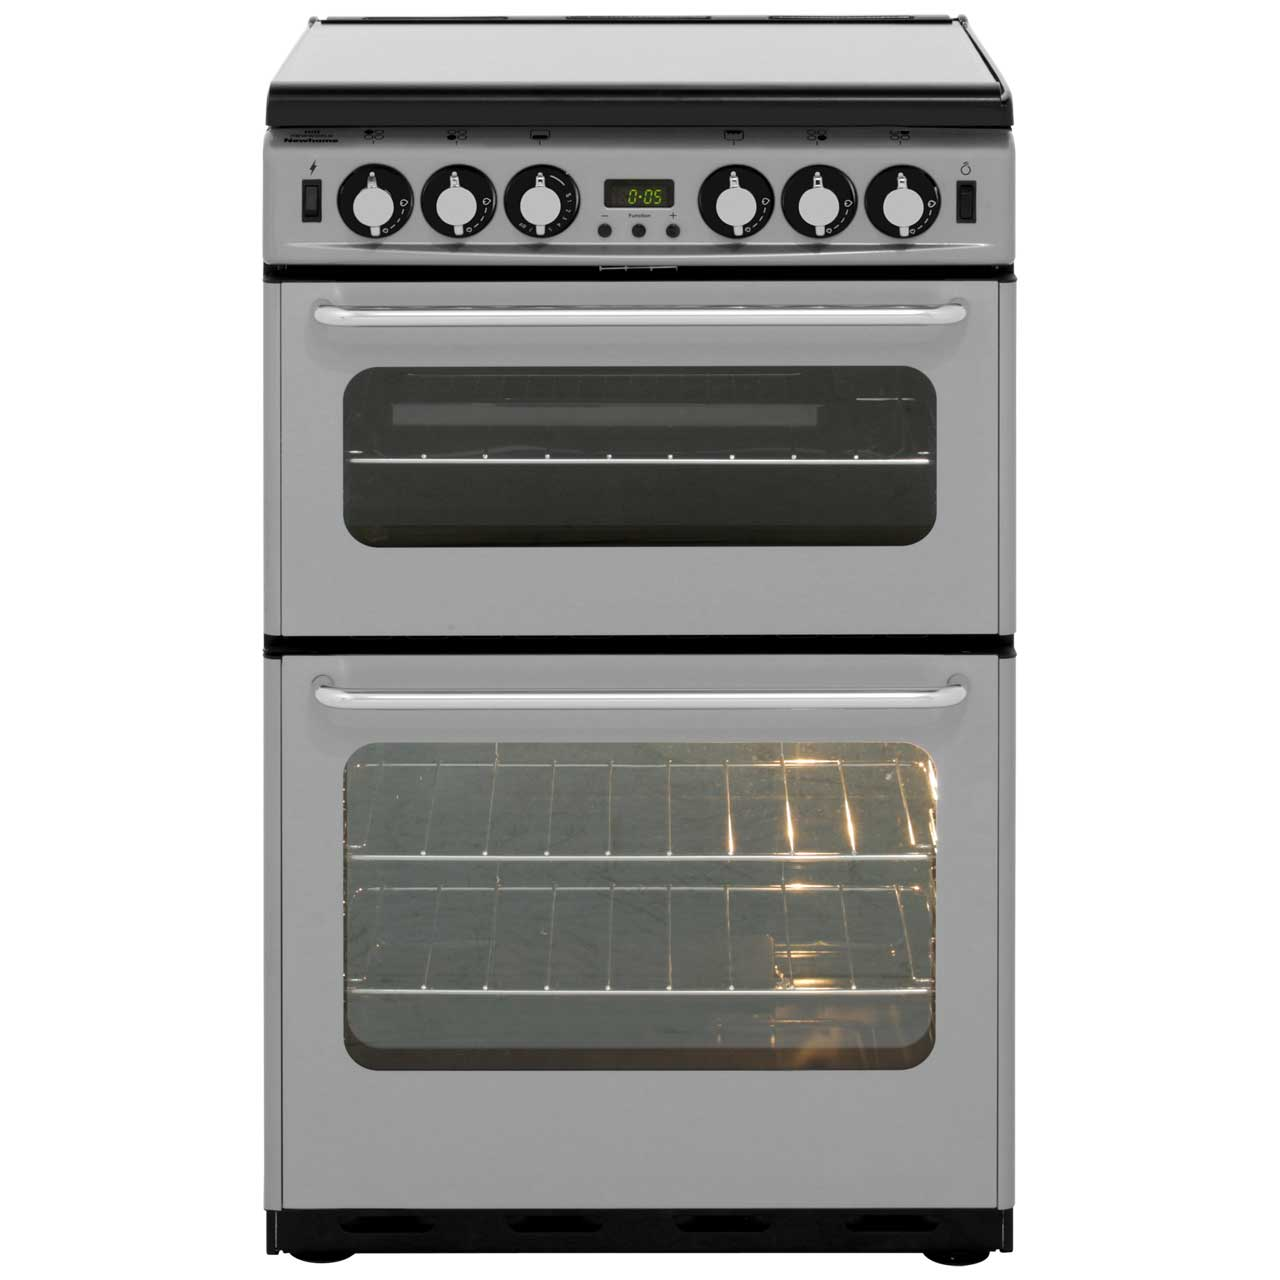 Newworld Newhome NW550TSIDLM Gas Cooker with Gas Grill - Silver